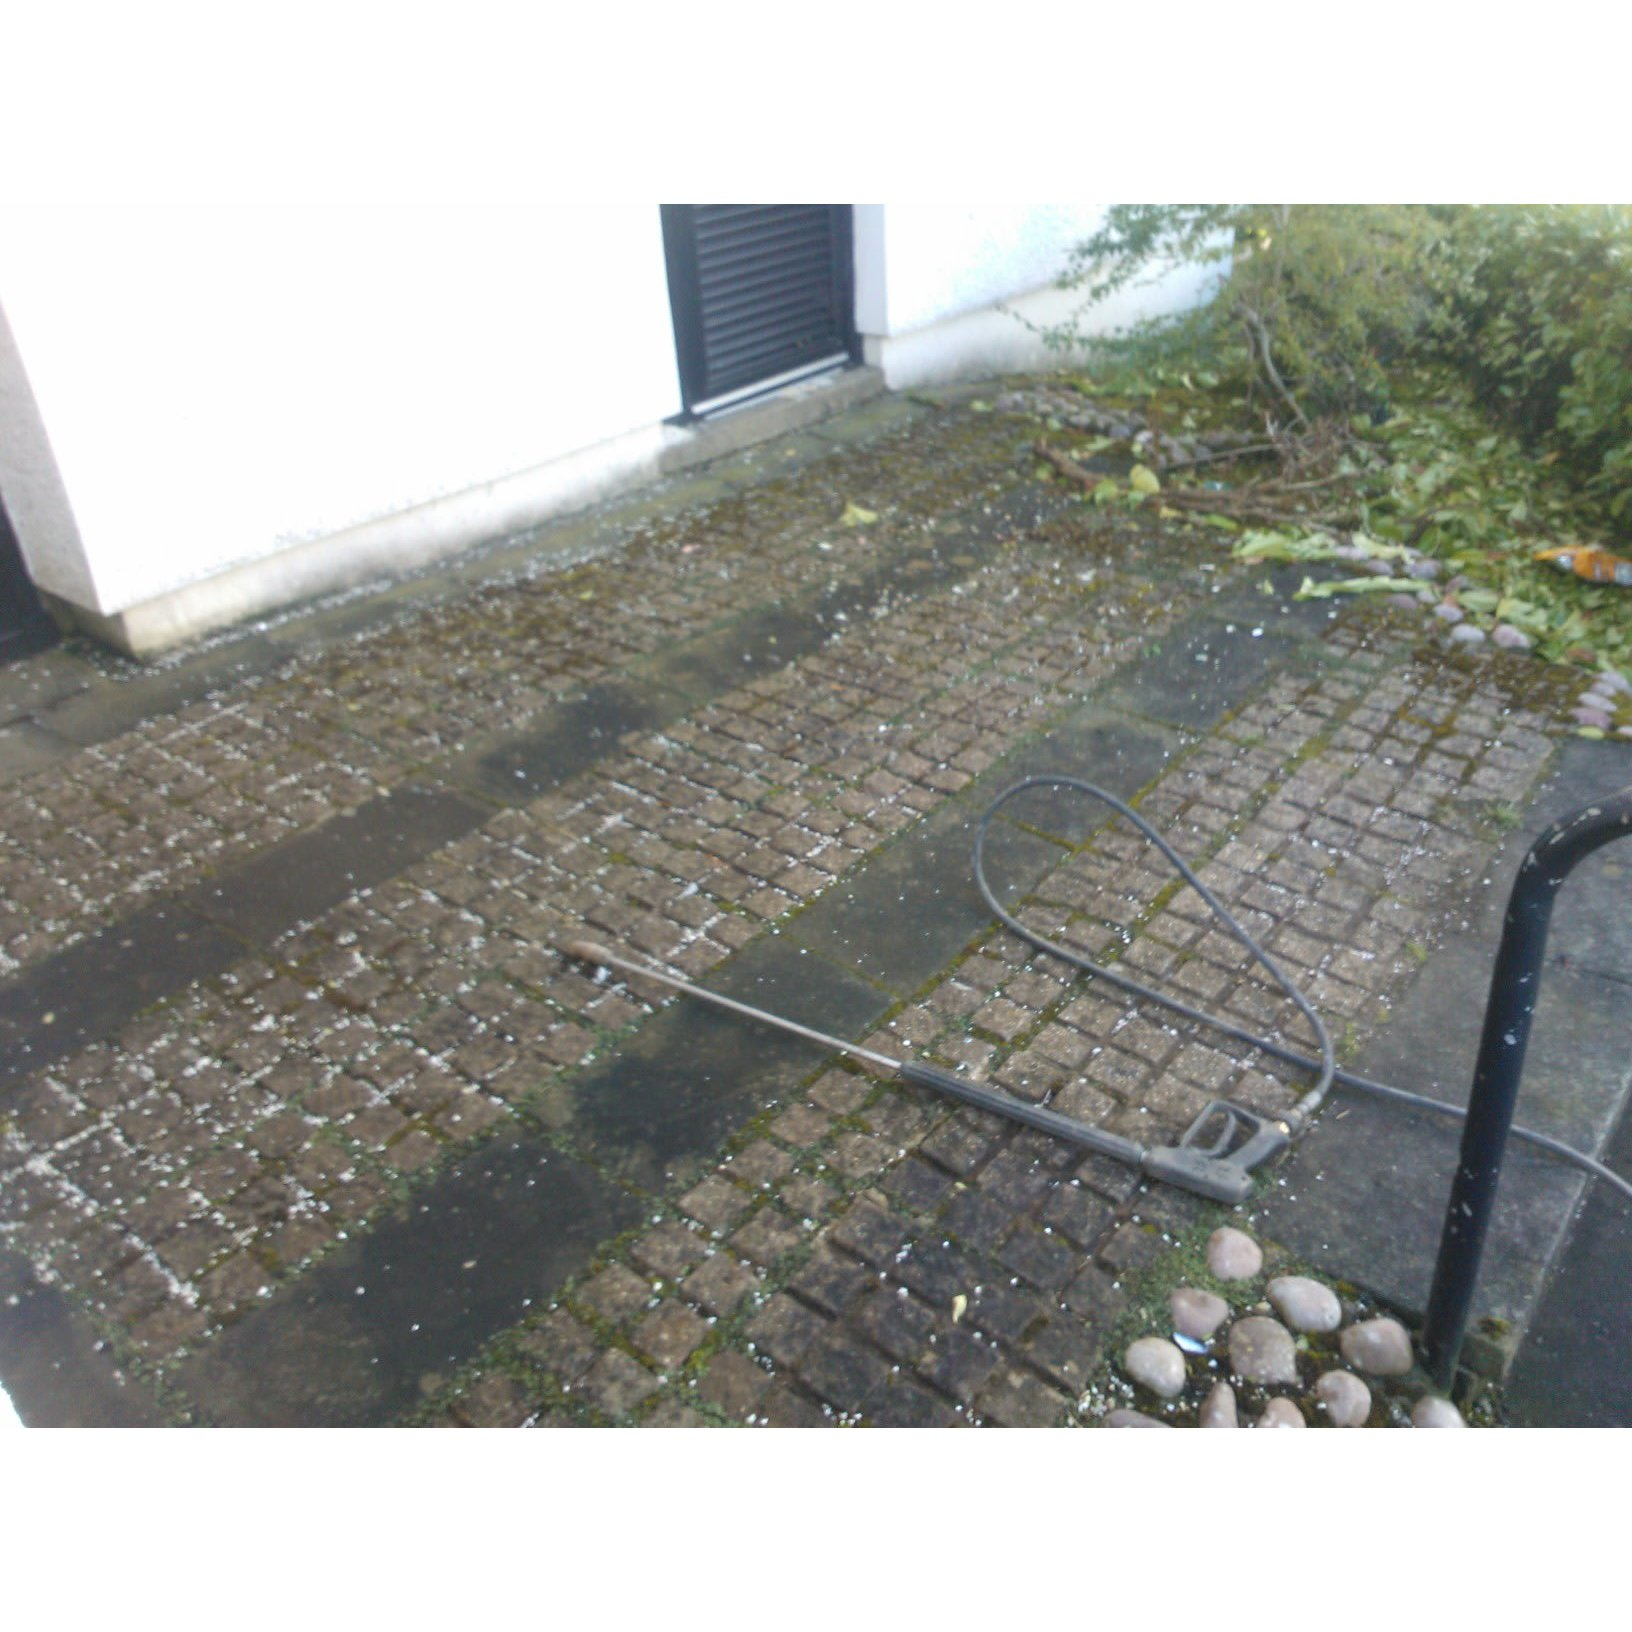 Maxi-Jet Stone Cleaning - Glasgow, Lanarkshire G53 7FD - 01418 922214 | ShowMeLocal.com